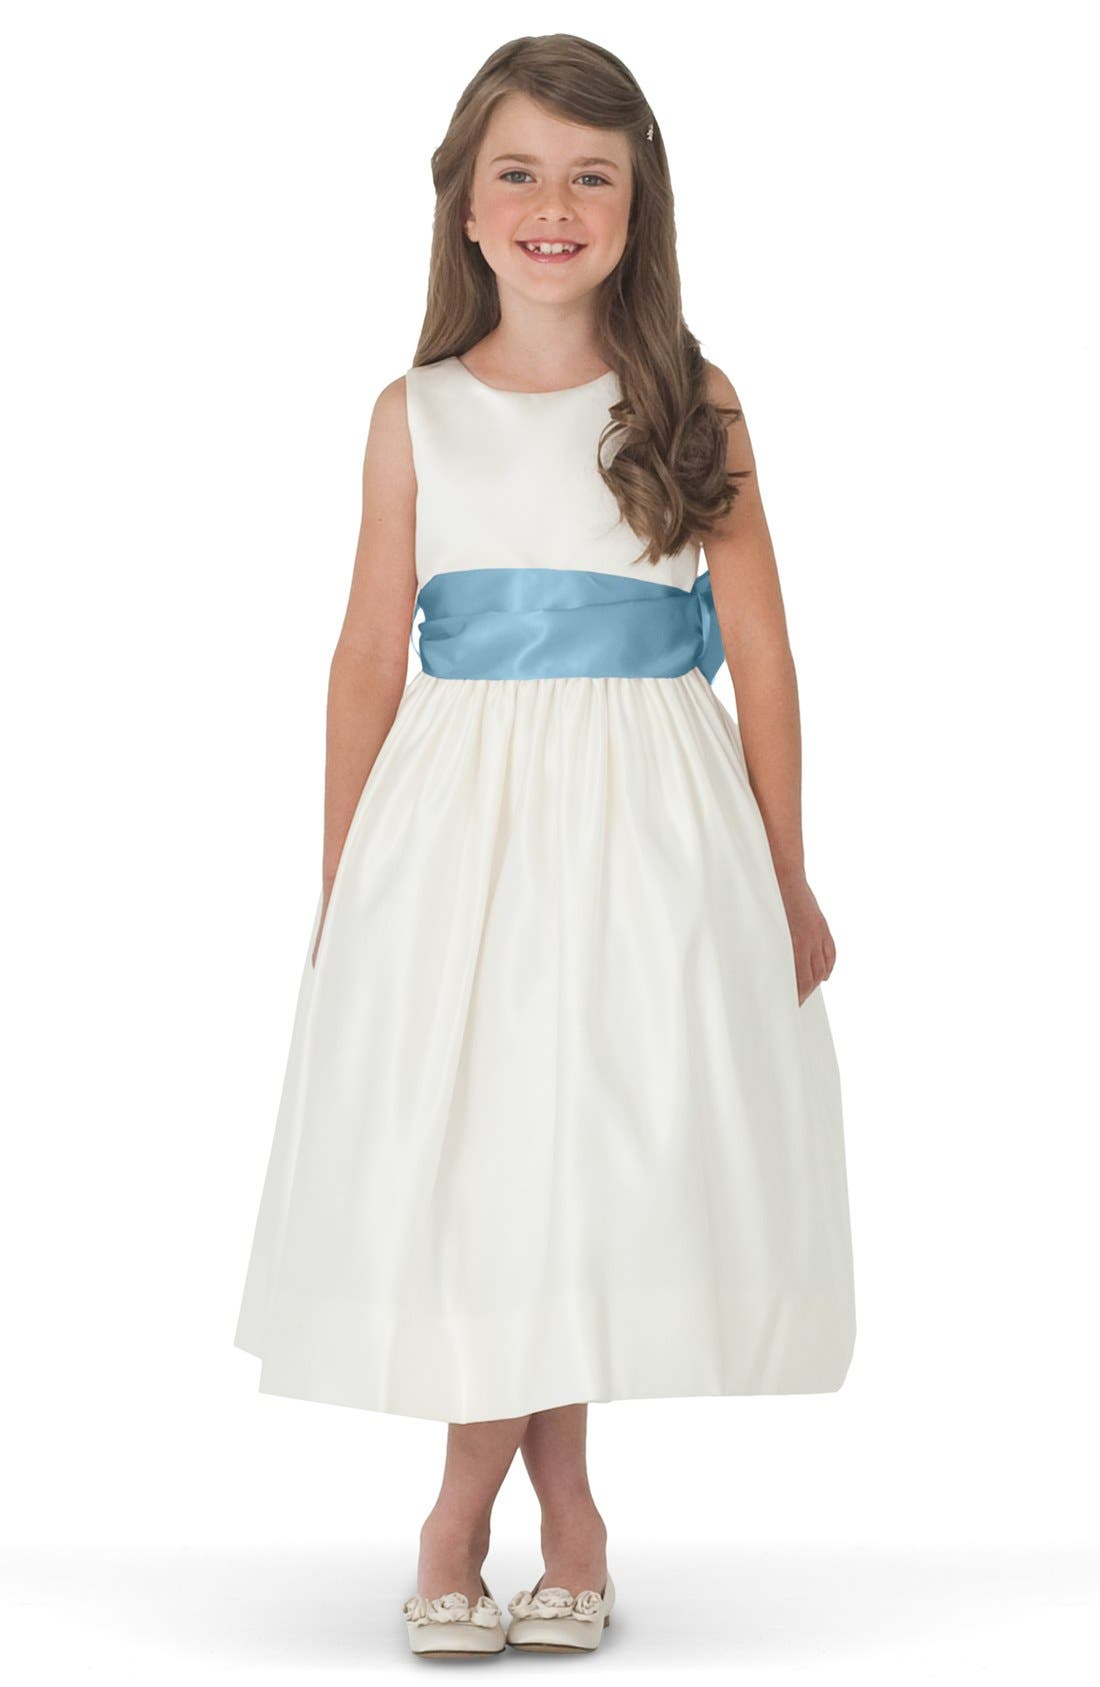 Sleeveless Satin Dress with Contrast Sash,                         Main,                         color, Ivory/ capri